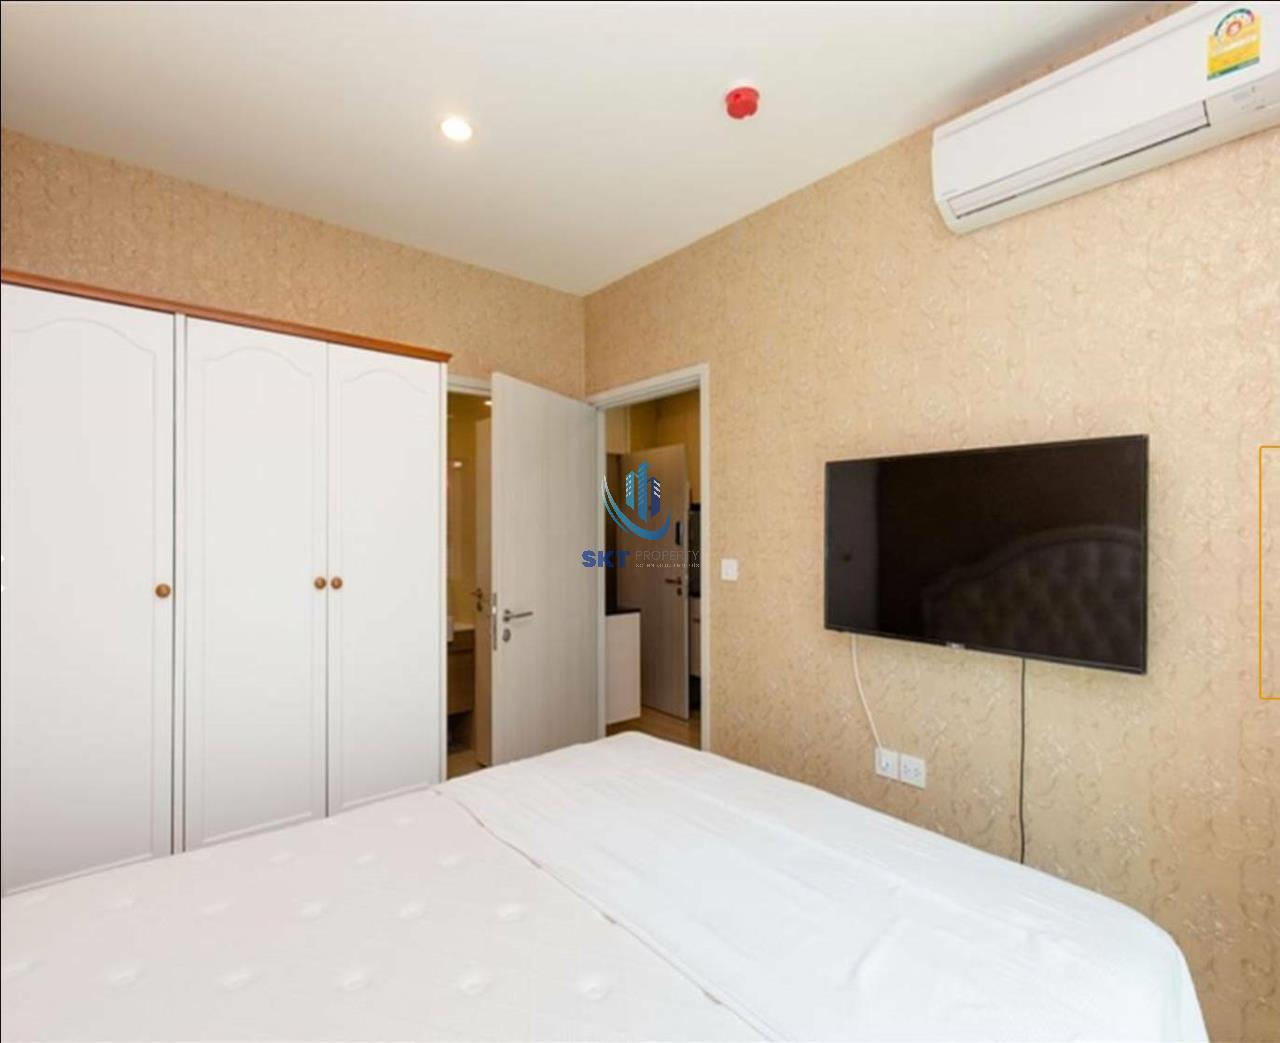 Sukritta Property Agency's FOR RENT NOBLE REVOLVE RATCHADA 1 NEAR MRT THAILAND CULTURAL CENTER 3